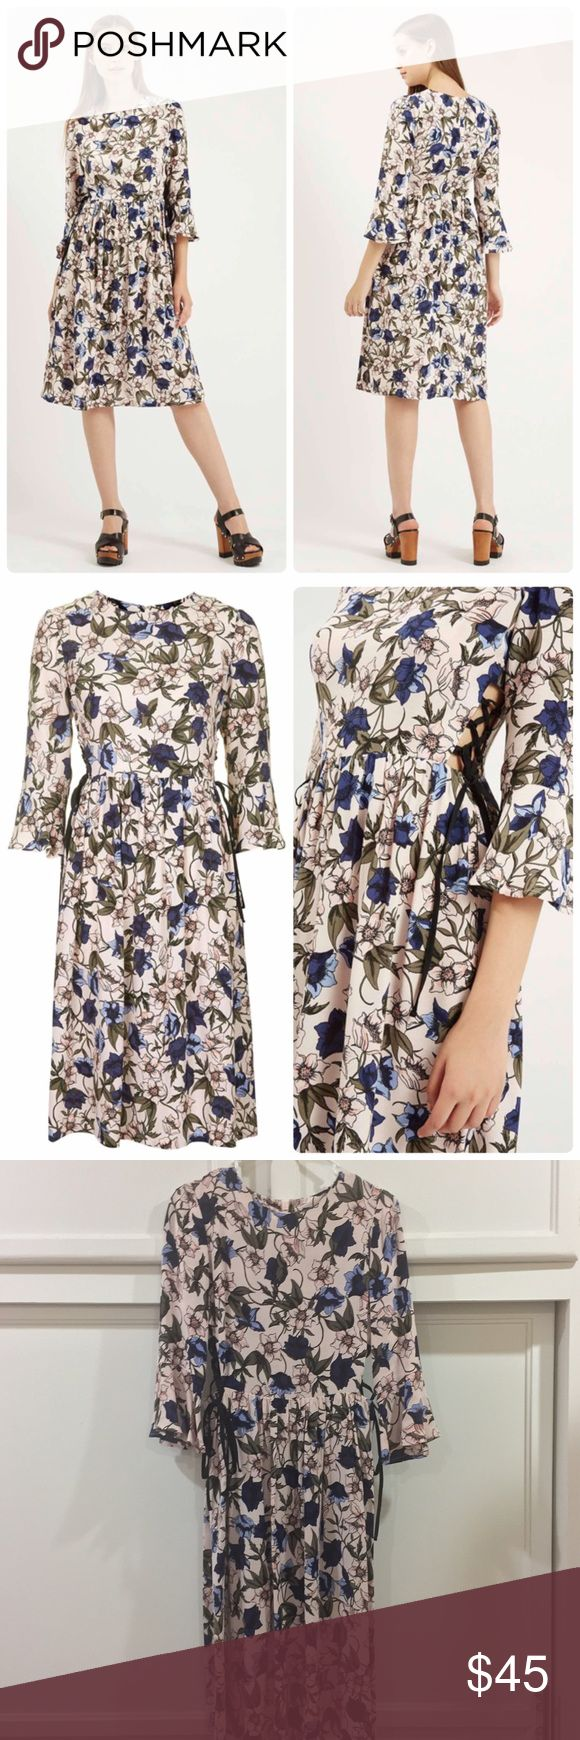 Topshop Autumn Floral Print Tie-Side Dress Floral print and lace-up details look so-now with this elegant dress. A grown-up girlie style, it sits high on the waist with tie-up sides for a peek of skin. Condition: like new. Topshop Dresses Midi